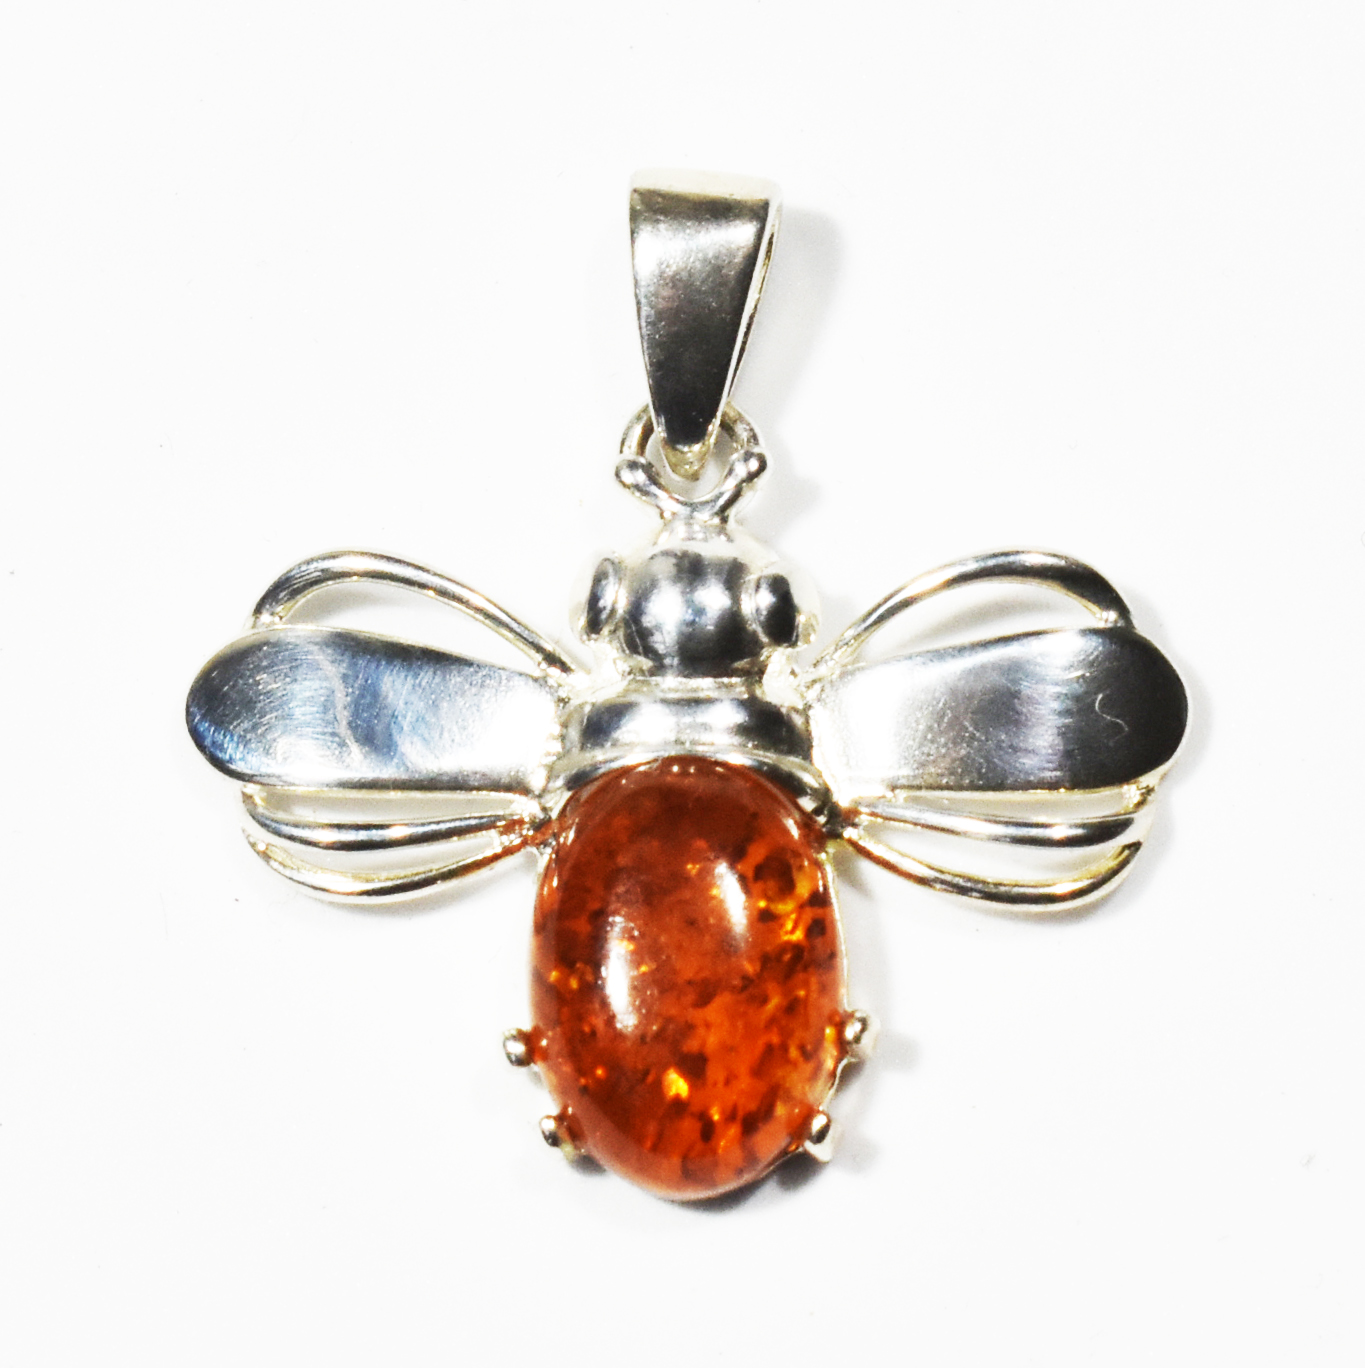 Hand made amber bee pendant- 36x32mm